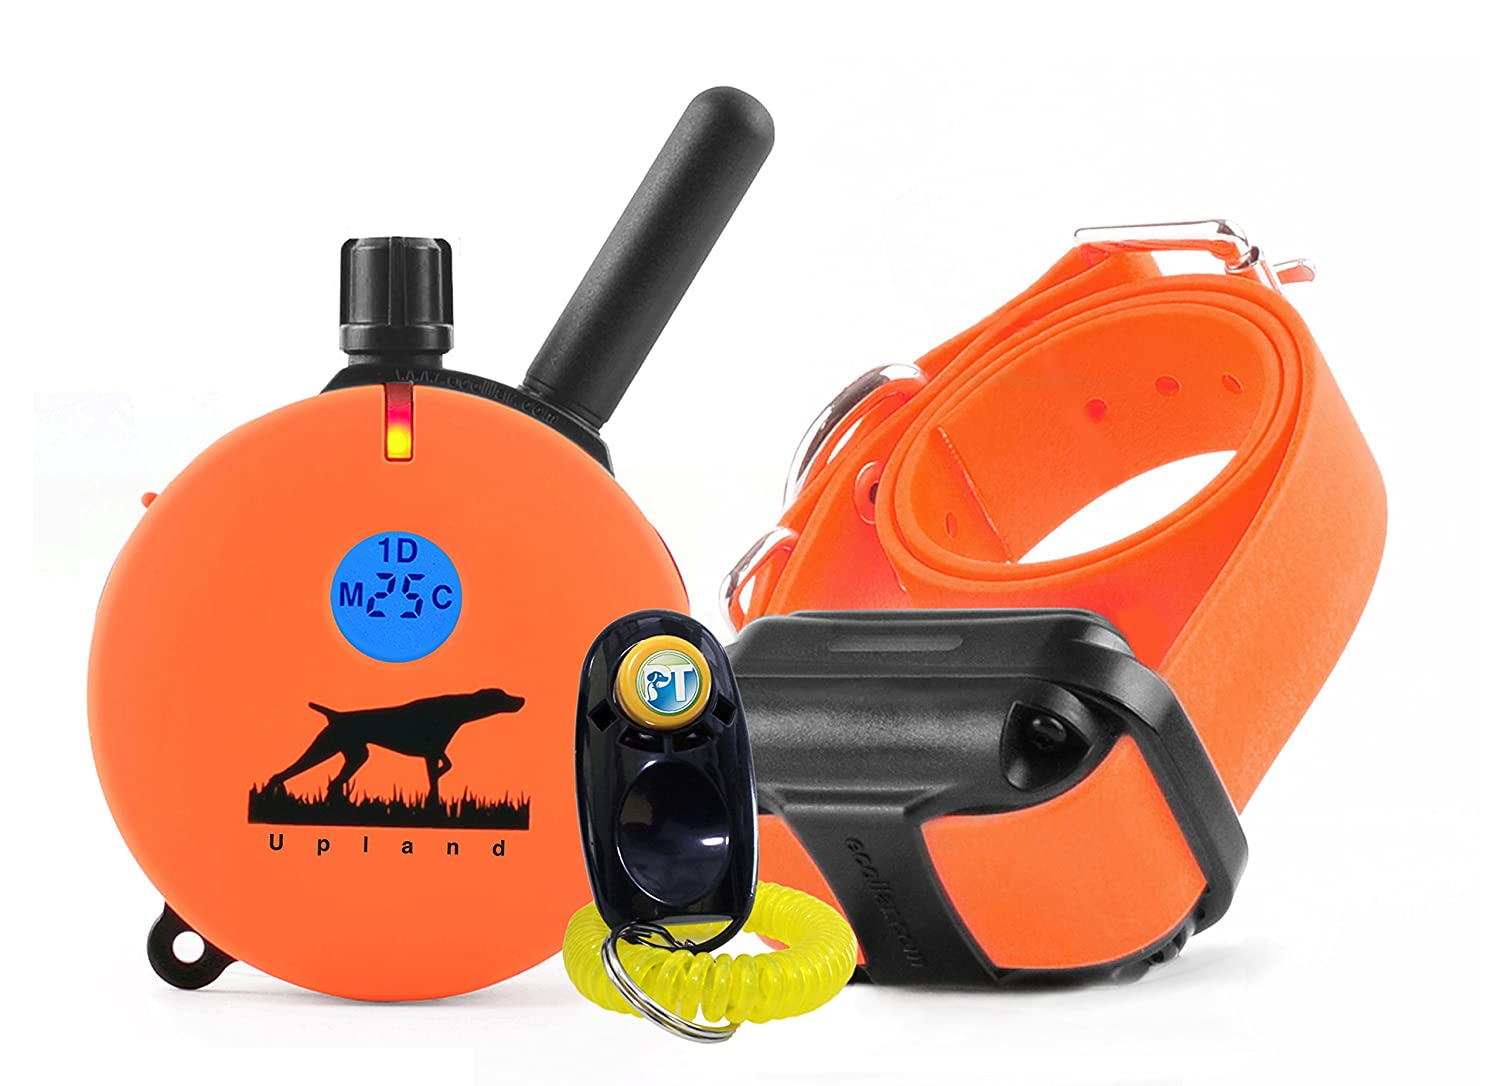 Bundle of 2 items E-Collar UL-1200-1 Mile Rechargeable Remote Waterproof Upland Hunting Trainer Educator Static, Vibration and Sound Stimulation collar with PetsTEK Dog Training Clicker